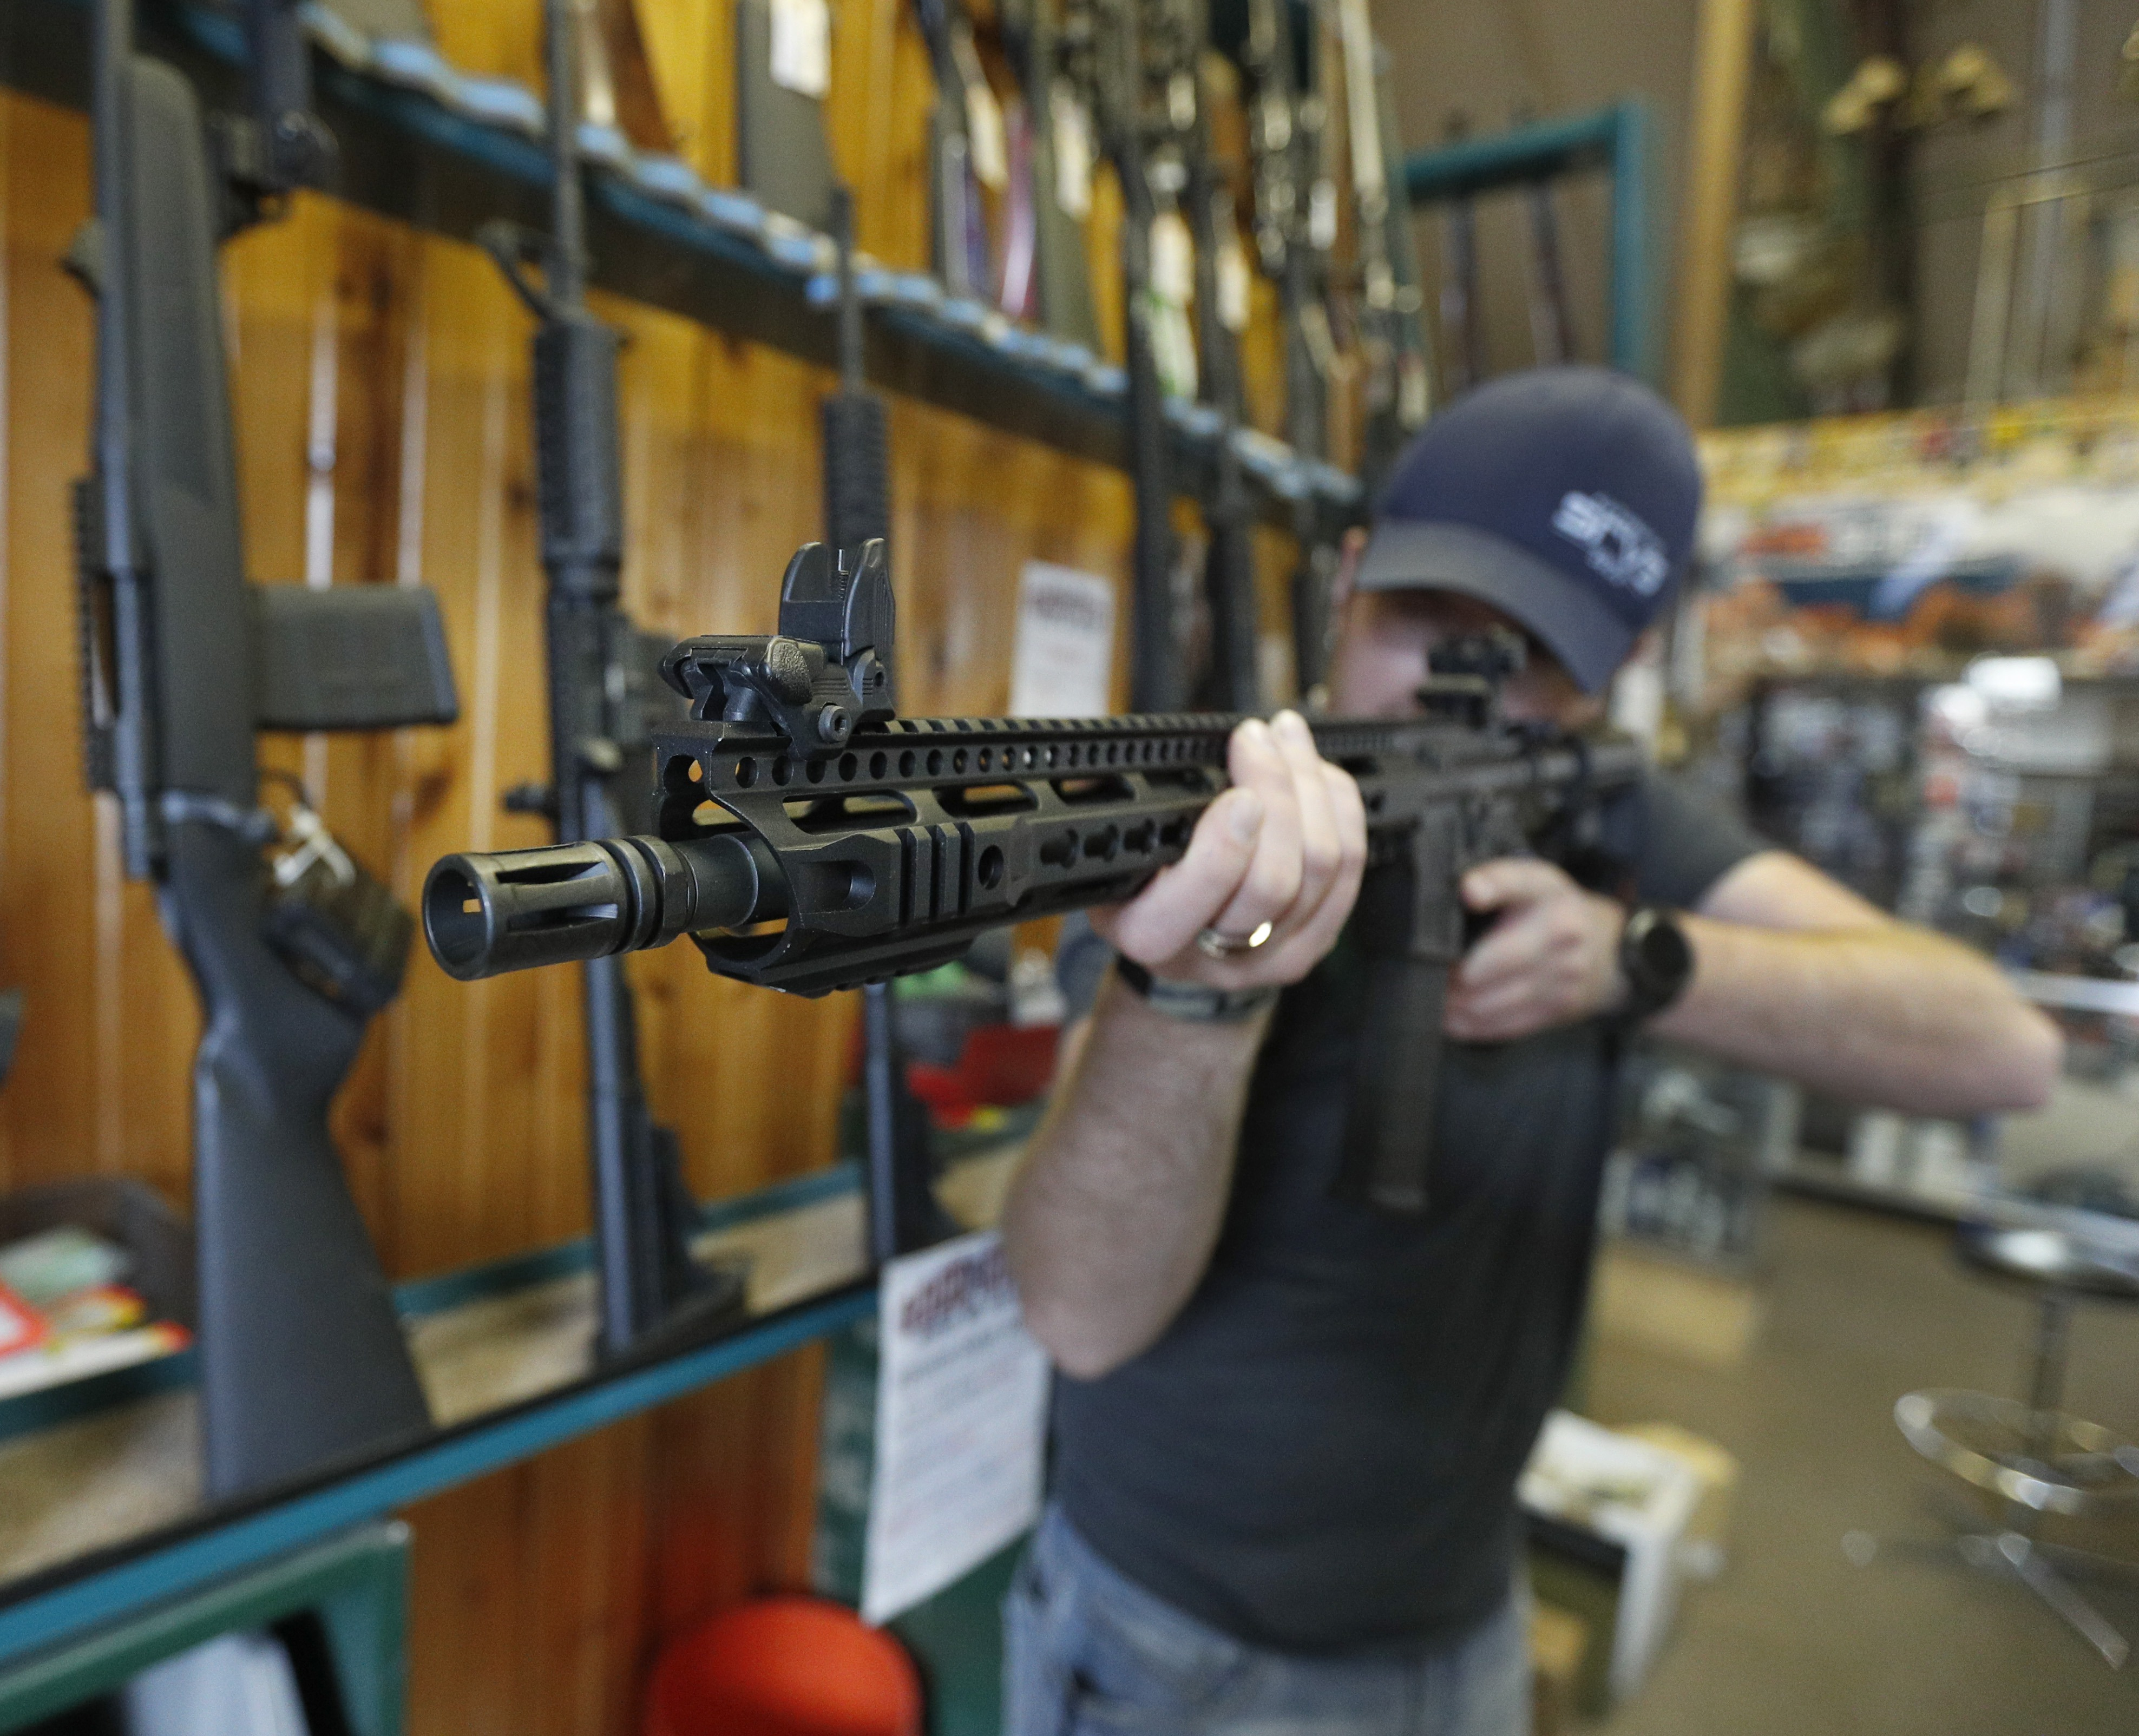 Dordon Brack aims a semi-automatic AR-15 that is for sale at Good Guys Guns & Range on February 15, 2018, in Orem, Utah. (Getty)